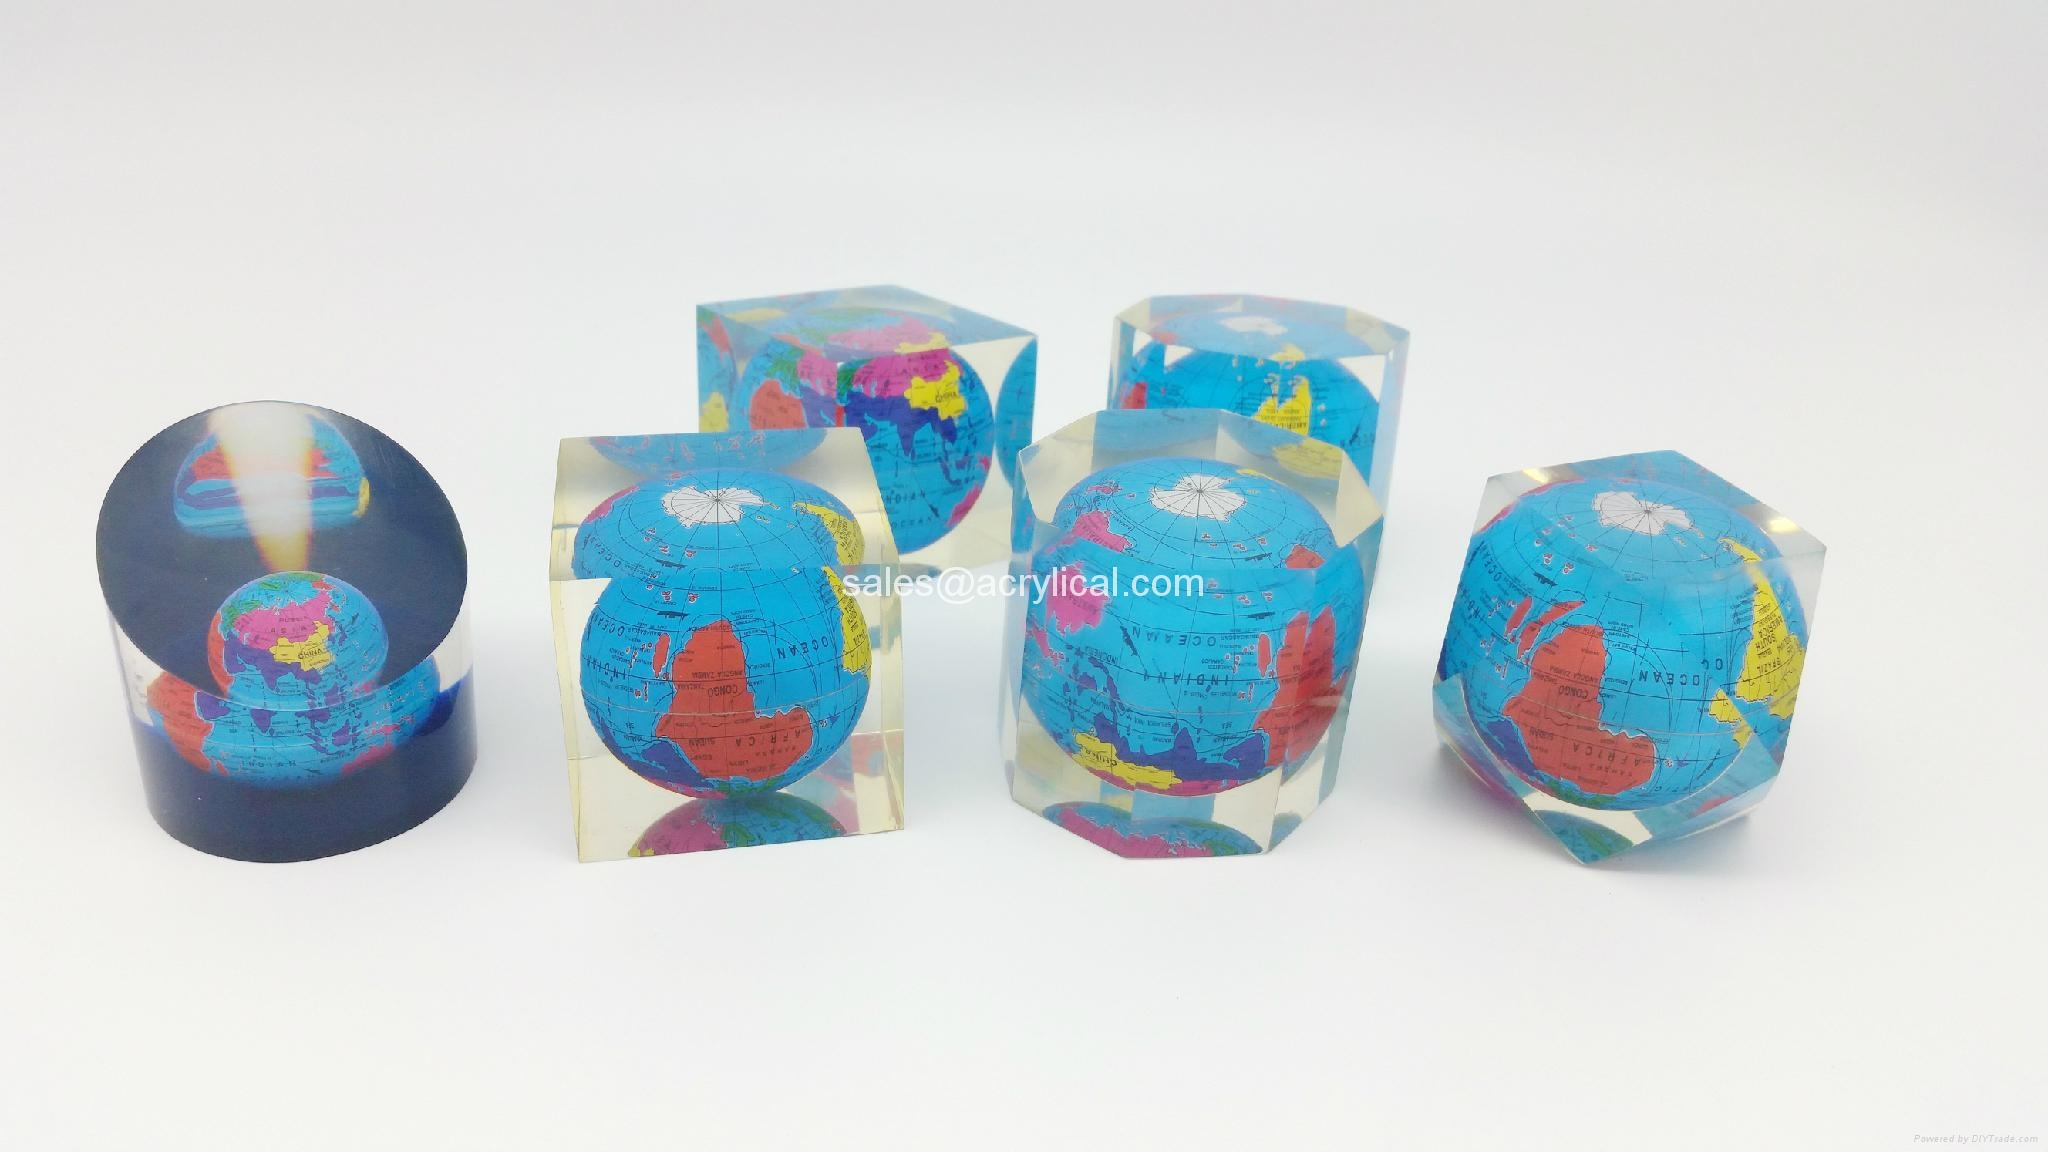 Acrylic Embedment,Acrylic Embedment Awards,Promotional Awards & Products,gifts,  corporation gifts, acrylic embedment award,Lucite Embedments,Acrylic Embedment-Corporation gifts,Promotion gifts,acrylic logo block,acrylic paper weight